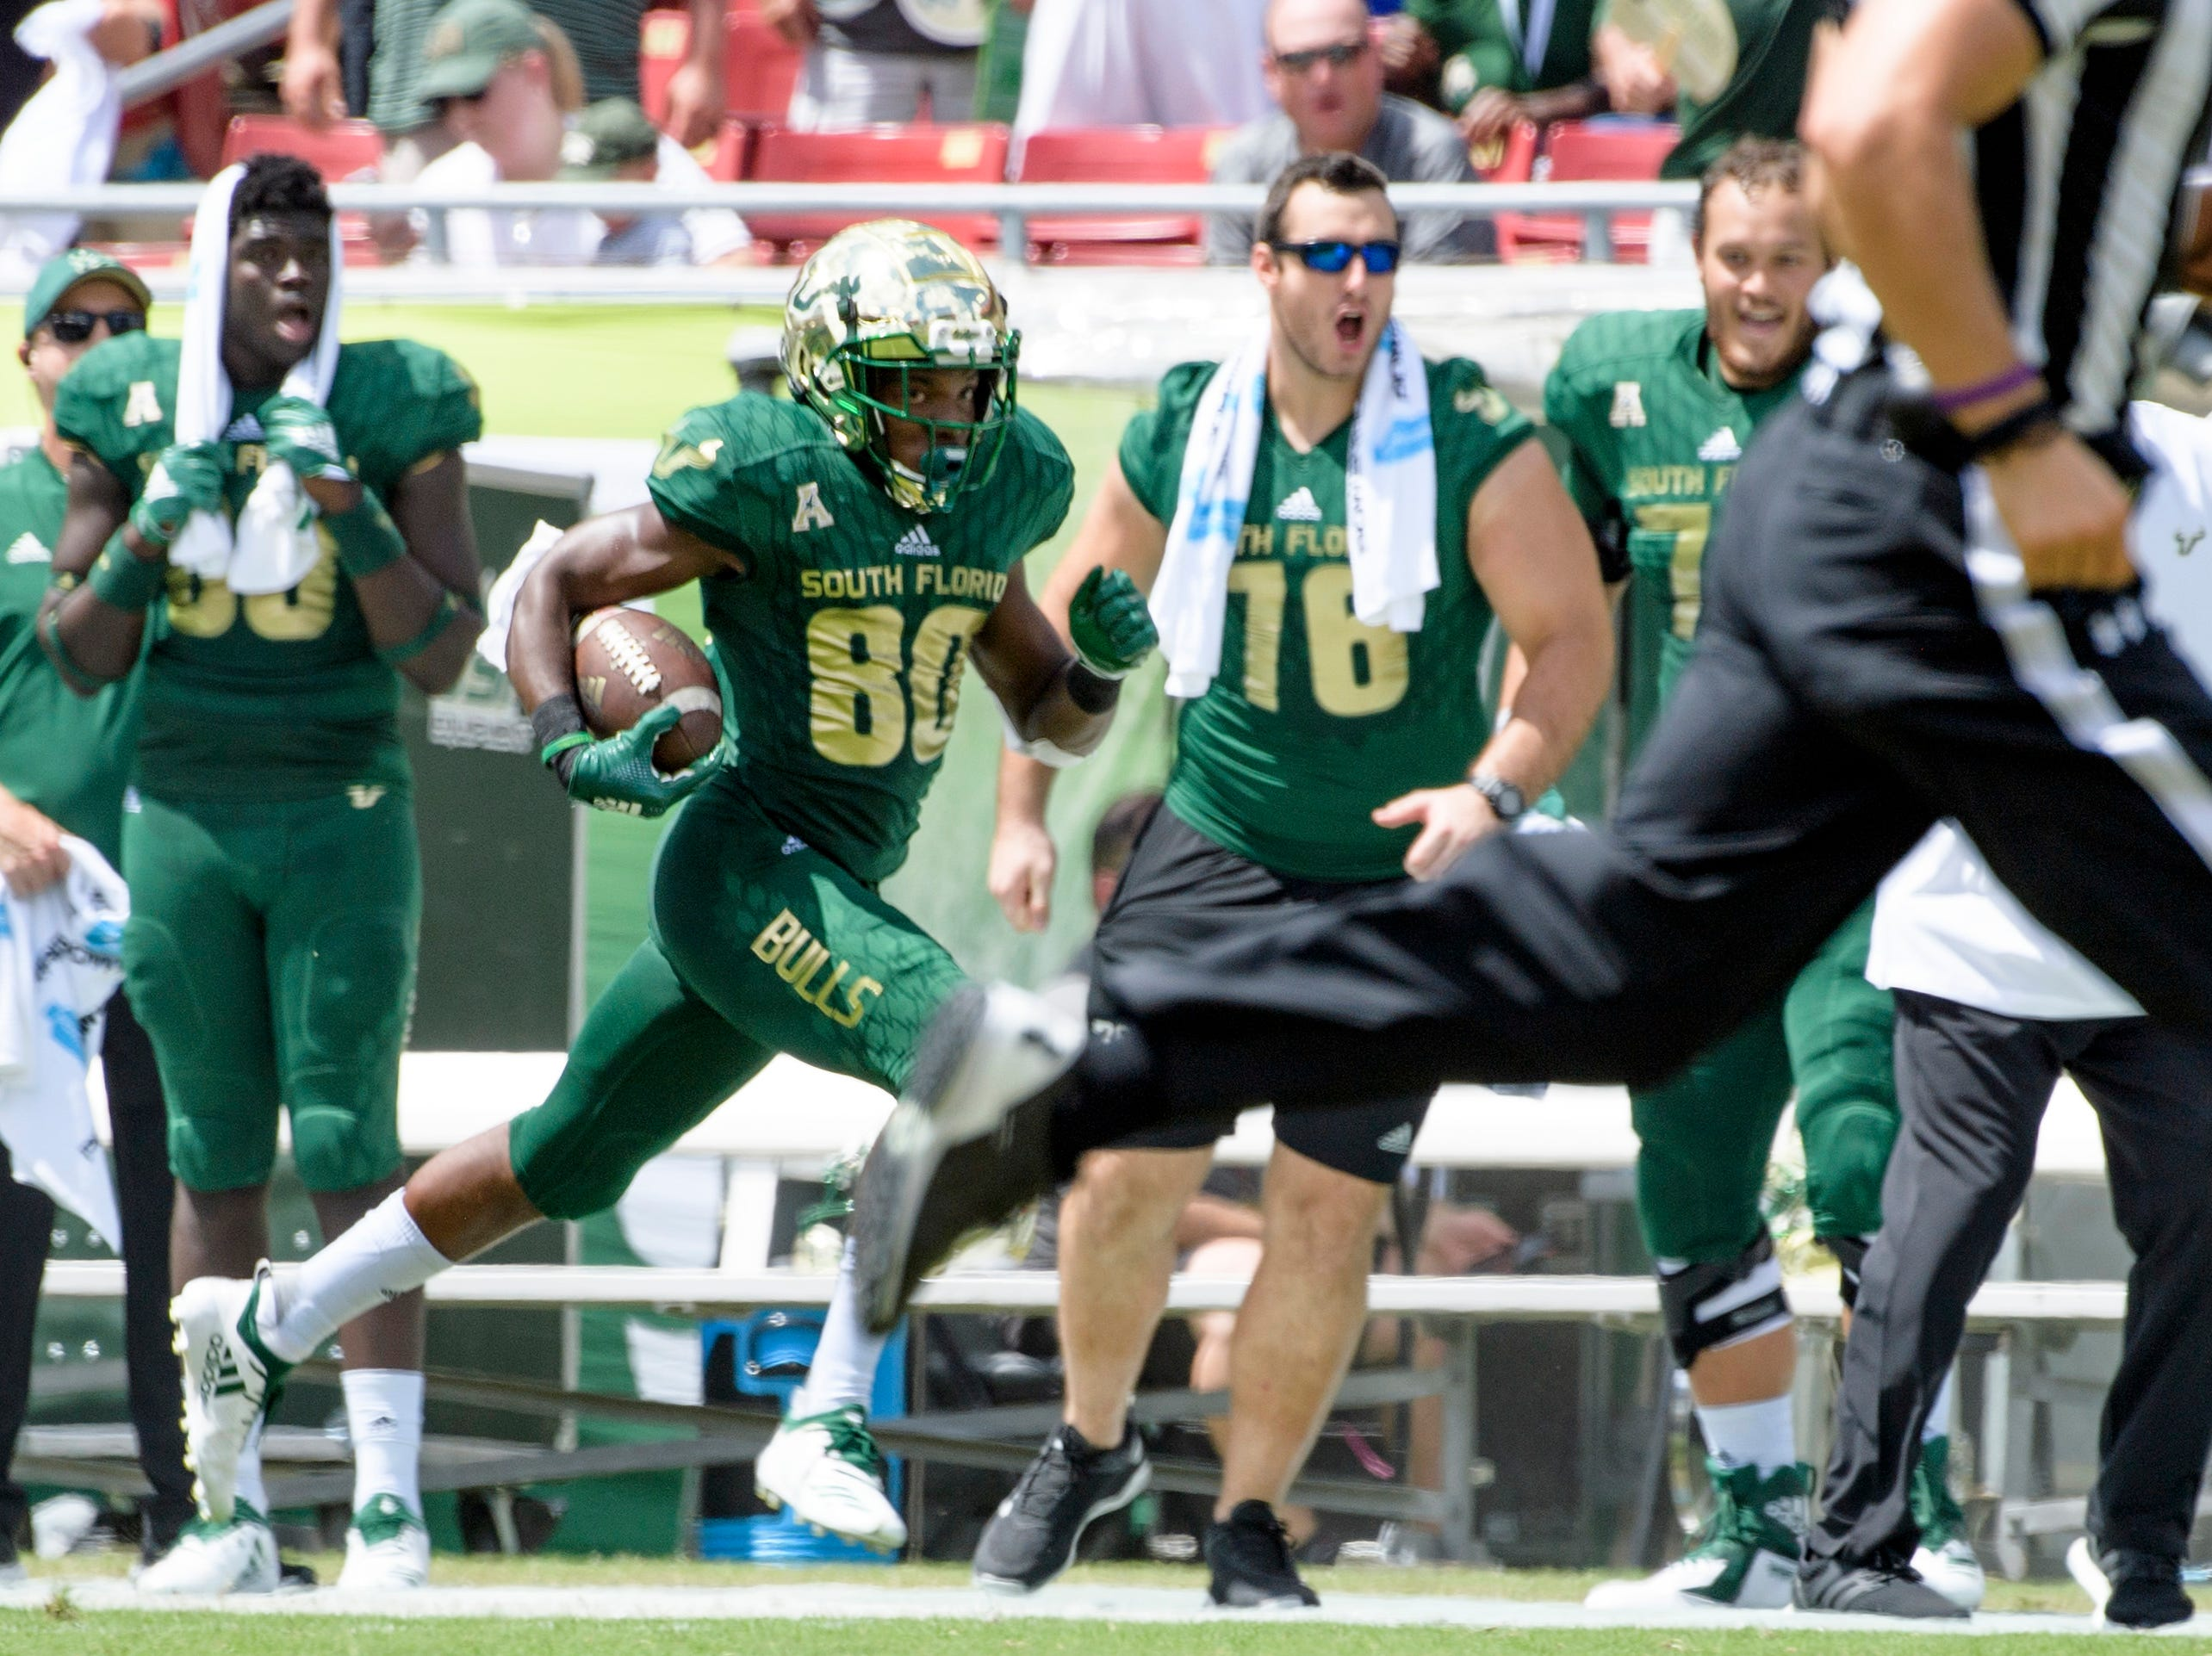 USF's Terrence Horne Jr. scores on a kick return in the first quarter against Georgia Tech.